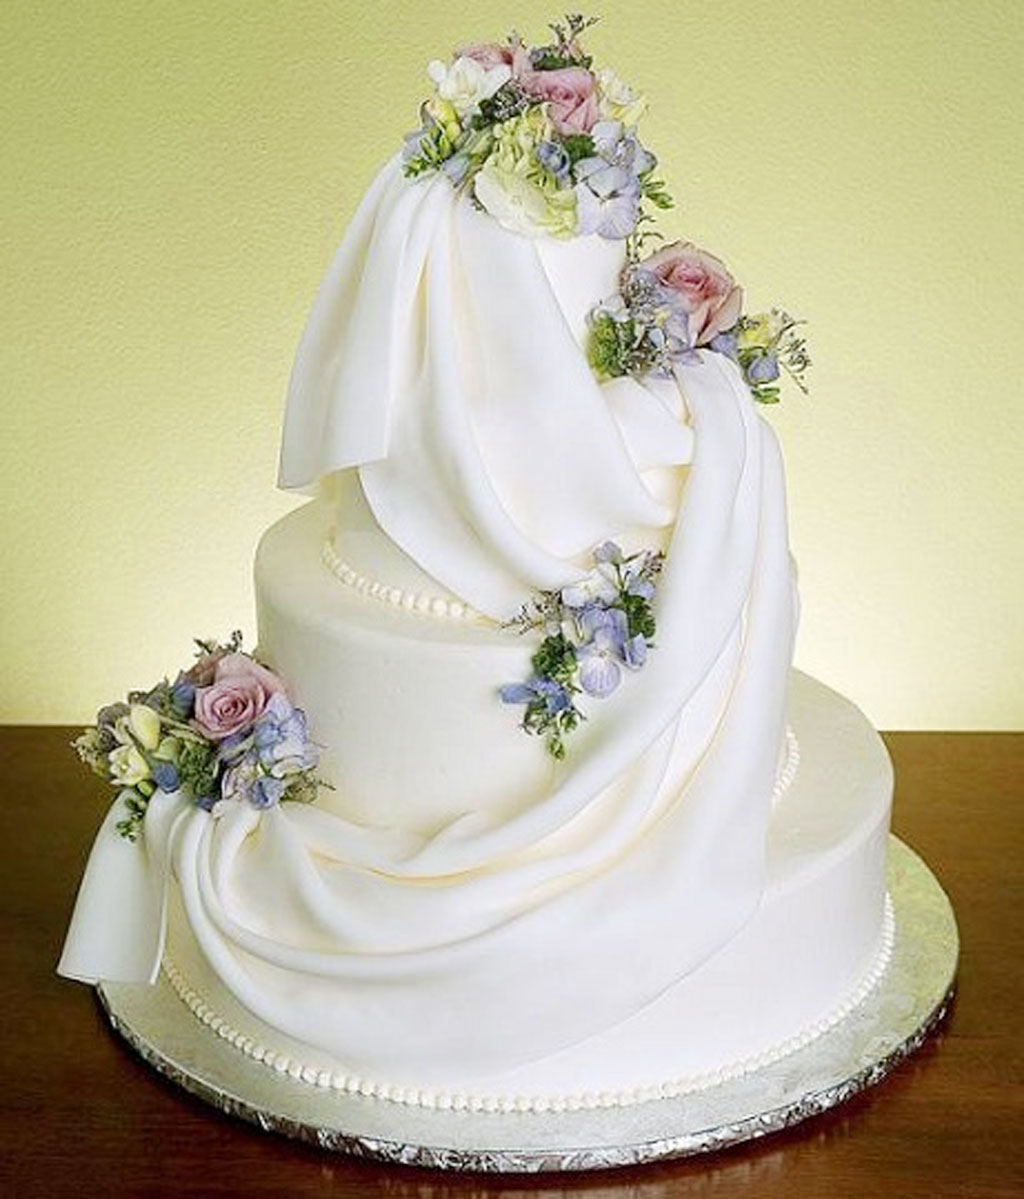 most beautiful wedding cake decoration wedding cake cake ideas by. Black Bedroom Furniture Sets. Home Design Ideas